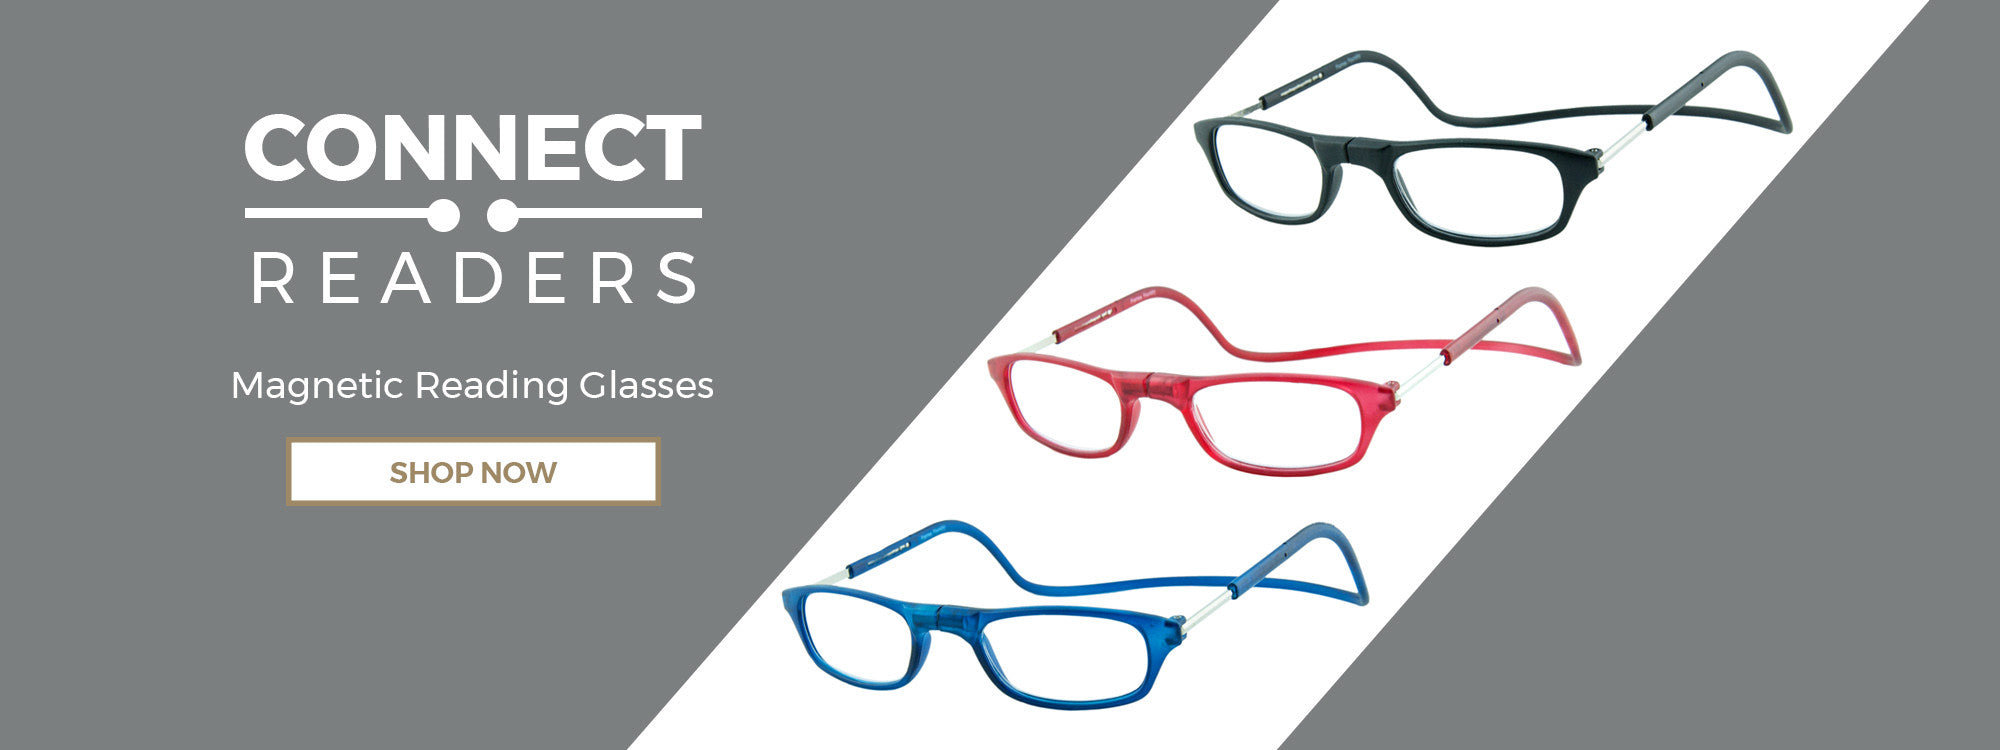 Connect Readers - Magnetic Reading Glasses